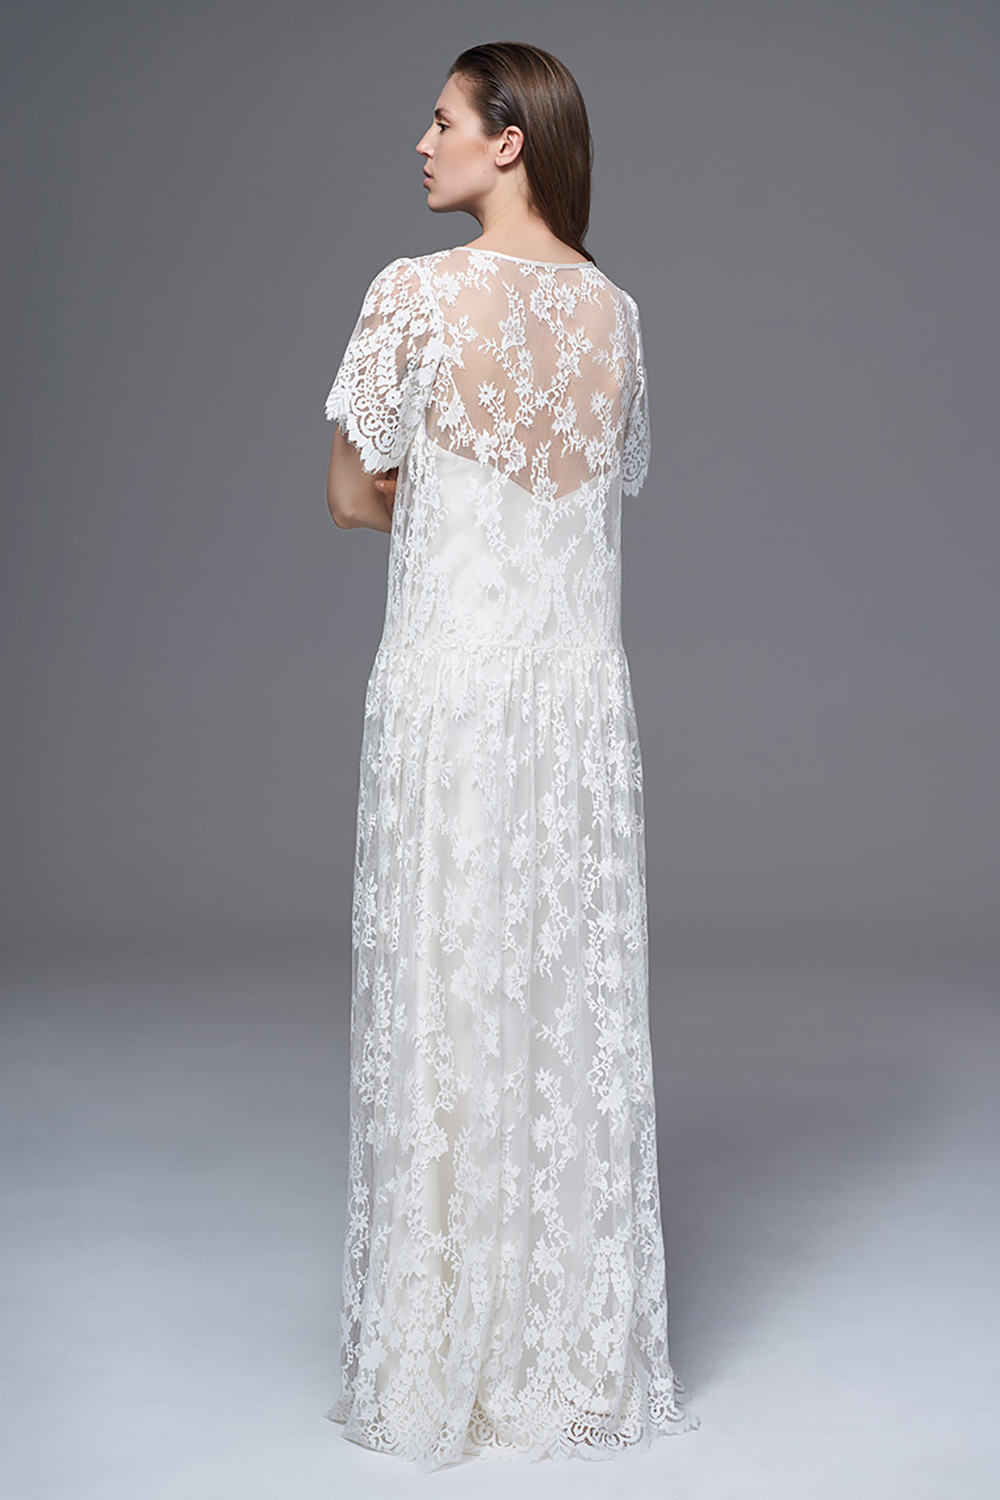 fccf03b3fcd8 THE STELLA SHEER LACE BOXY AND DROPPED WAIST DRESS WITH THE CLASSIC IRIS  SLIP. BRIDAL